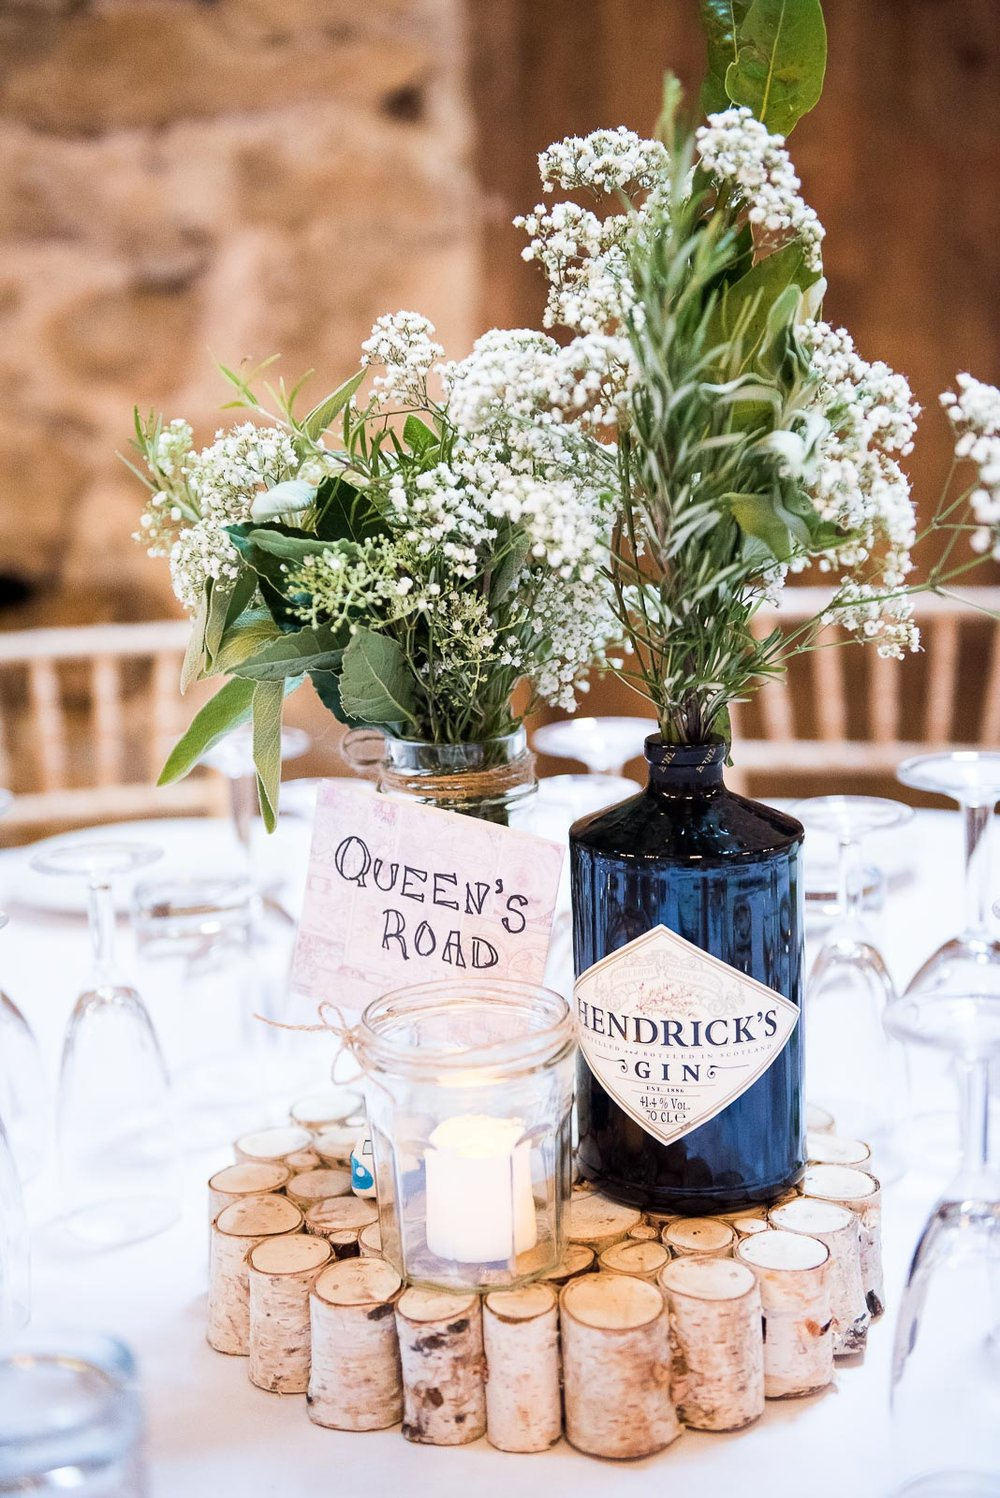 DIY gin bottle vase with gorgeous green florals © Jessica Grace Photography